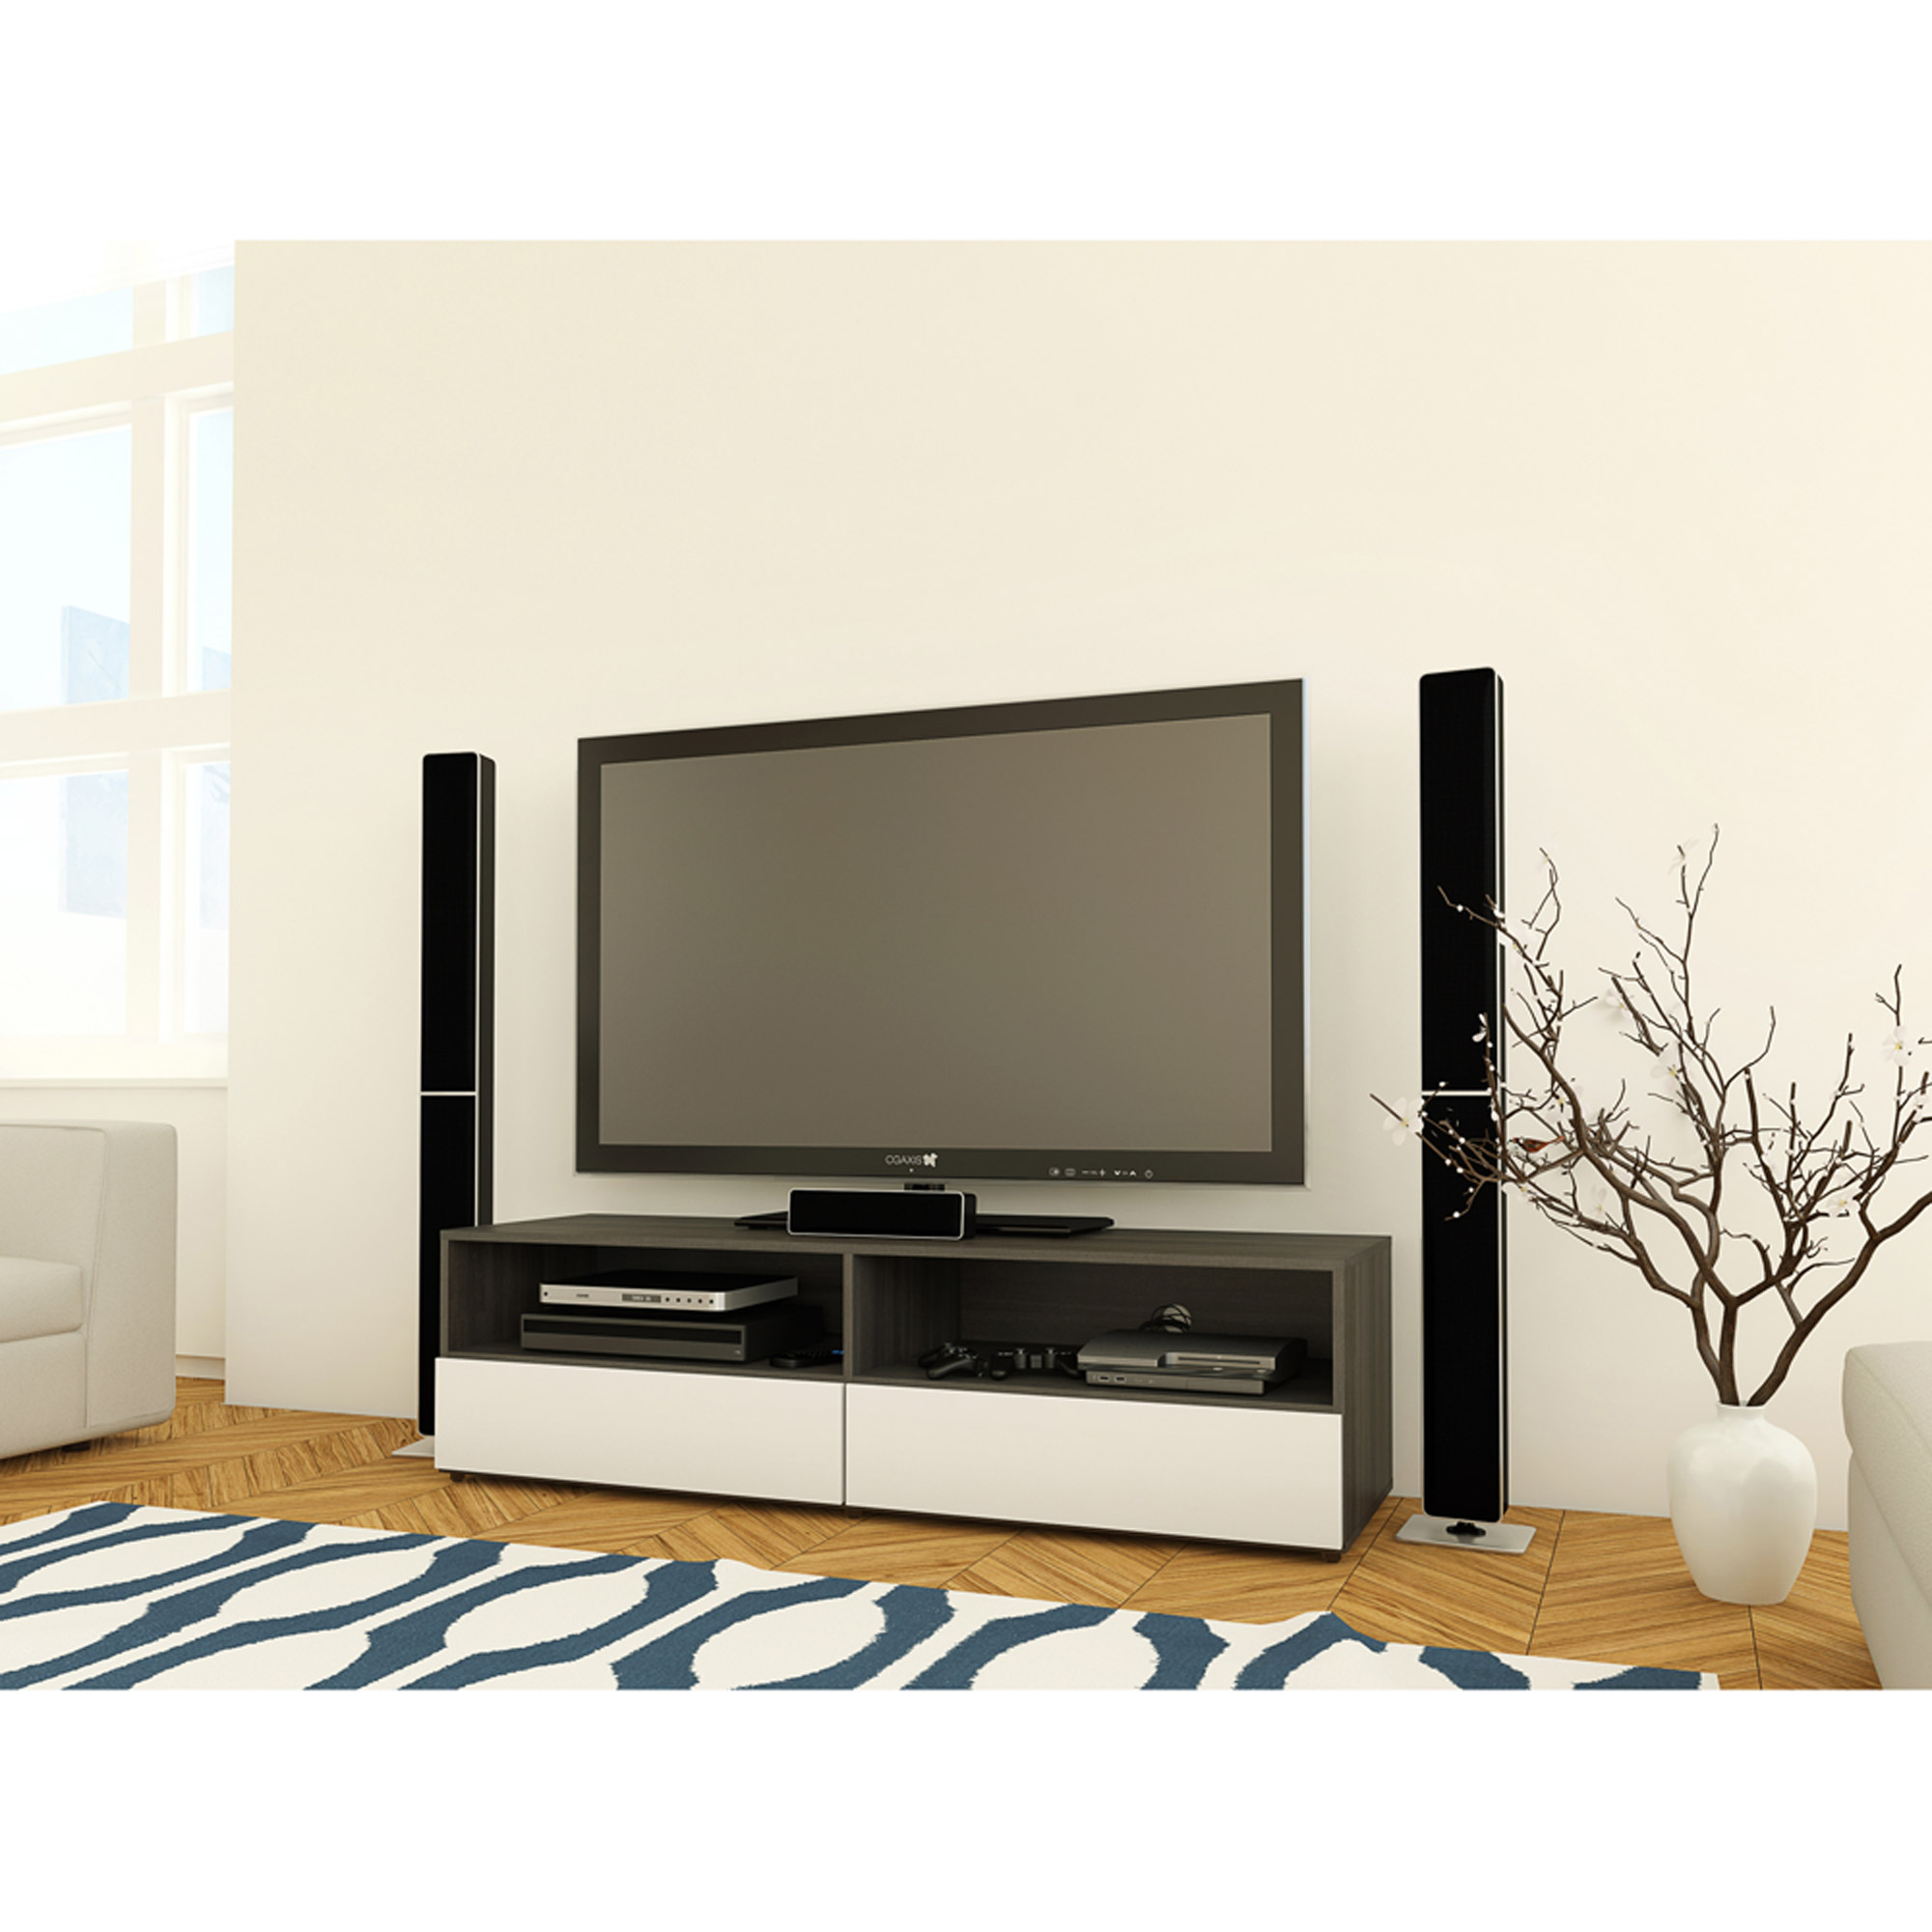 "Nexera Allure TV Stand for TVs up to 60"", White/Ebony"